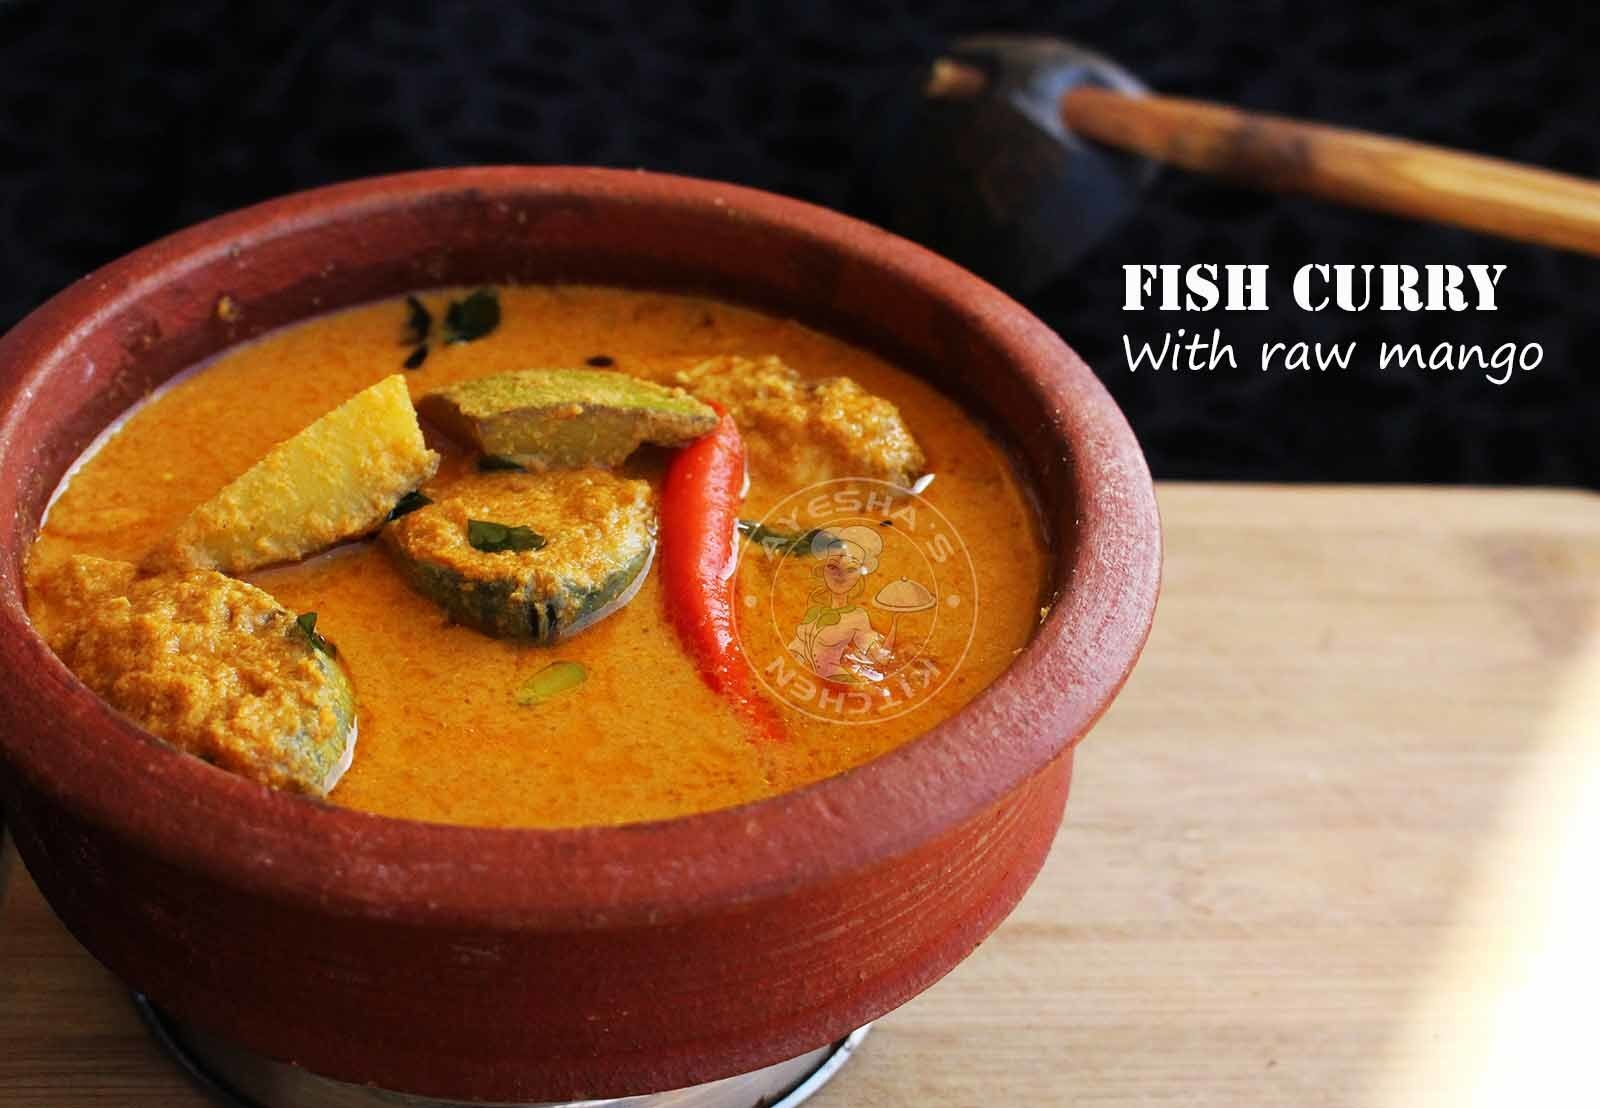 KERALA STYLE RAW MANGO FISH CURRY - FISH CURRY RECIPES